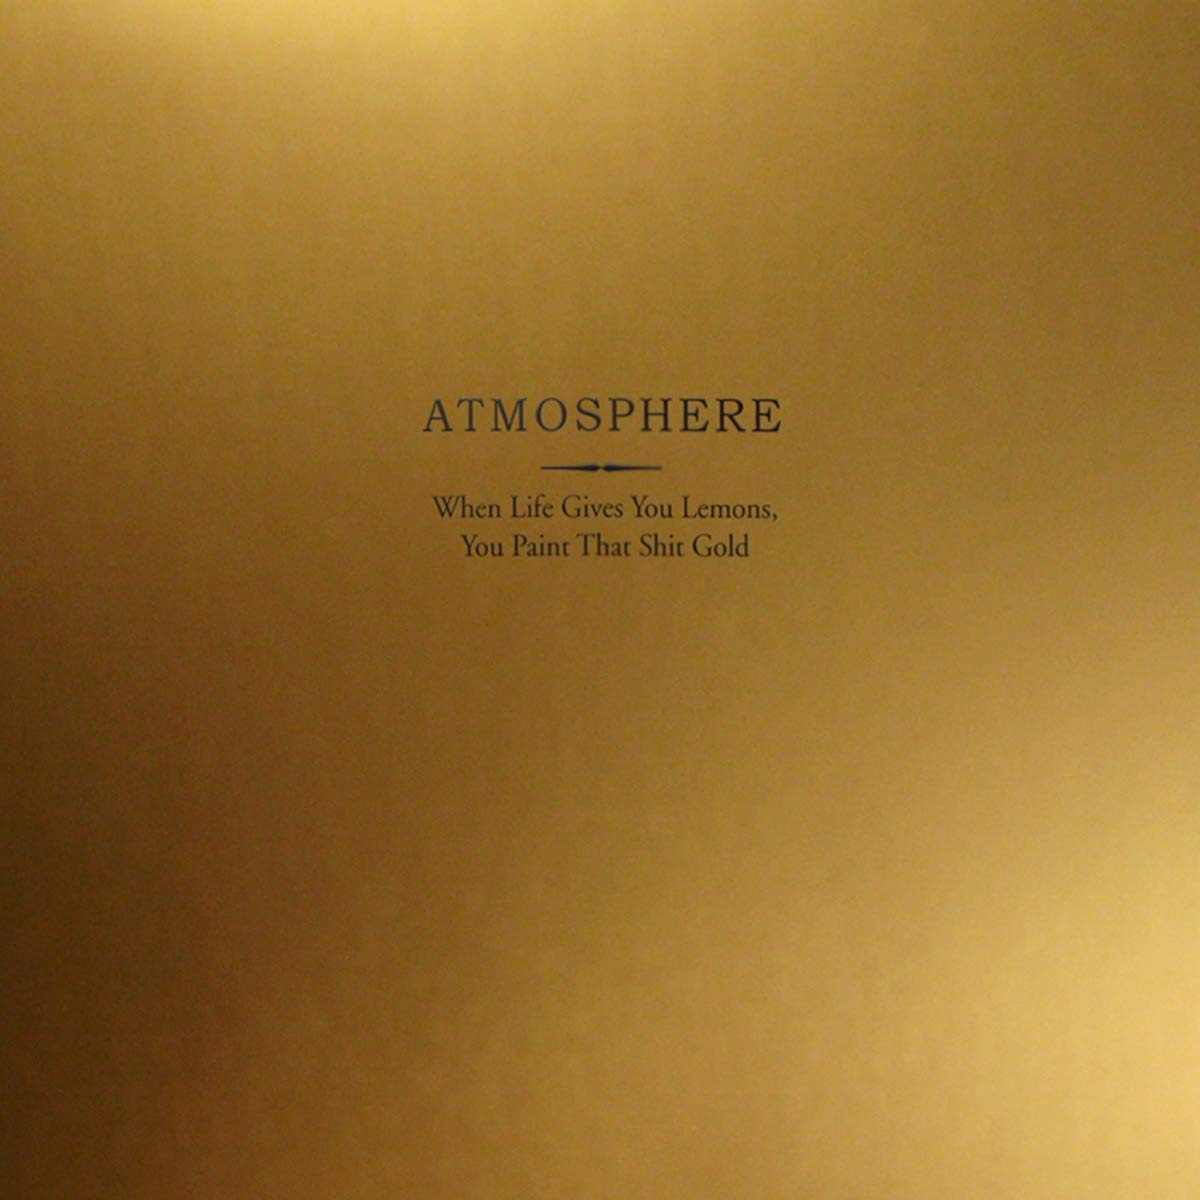 Atmosphere - When Life Gives You Lemons, You Paint That Shit Gold [2LP] (10th Anniversary, Gold Colored Vinyl, lemon-scented labels, metallic gold wide-spine jacket, 20-page lyric booklet, ) - Urban Vinyl | Records, Headphones, and more.